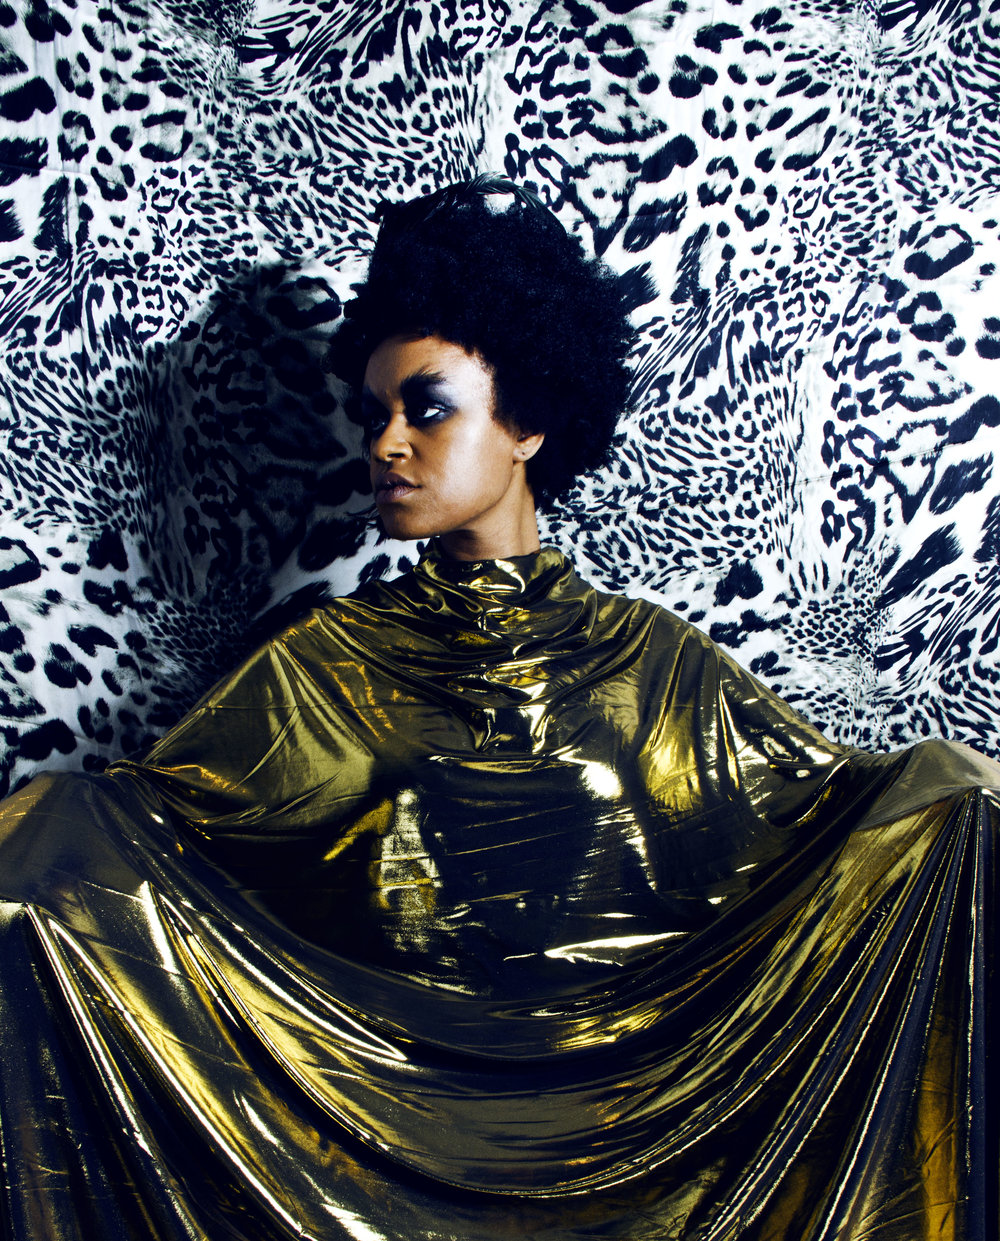 Photo by Ibra Acke. Art Direction by Wangechi Mutu